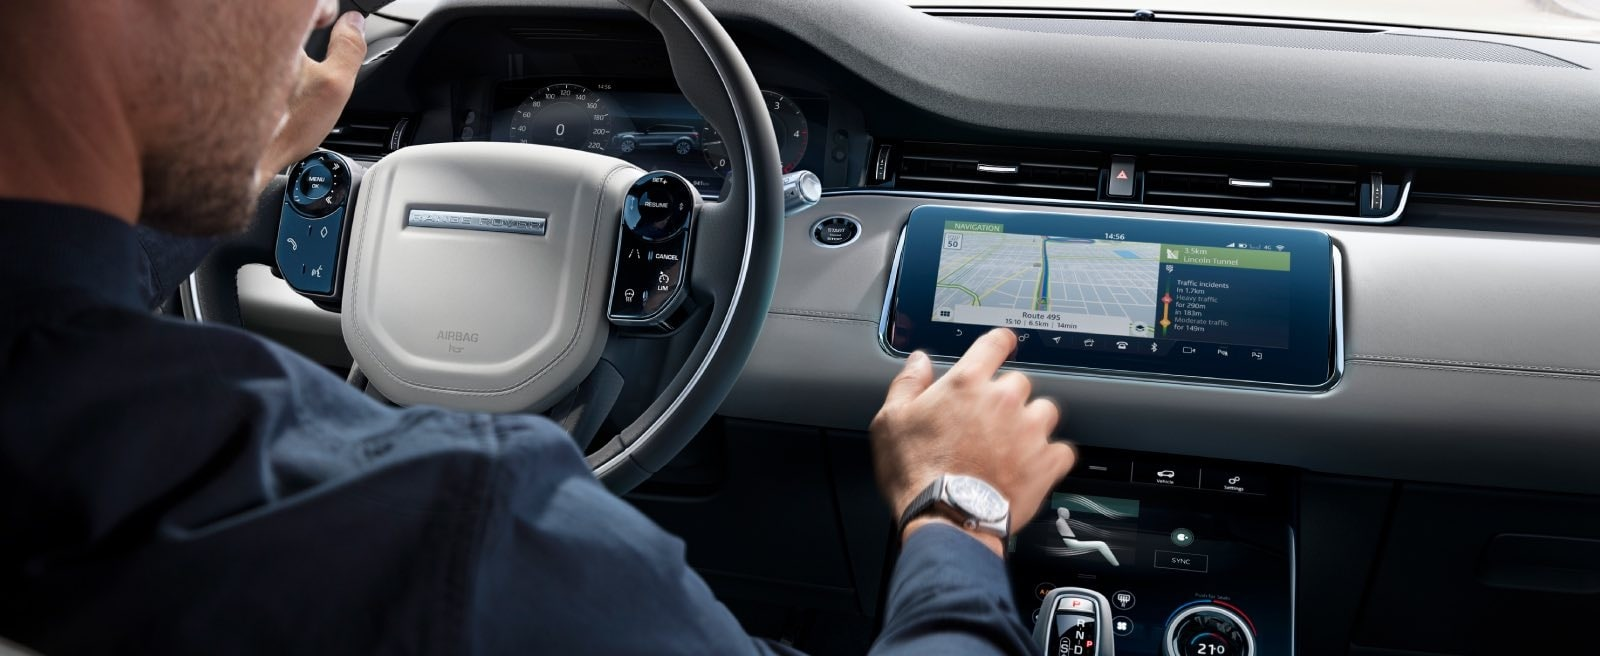 A Man Using The Infotainment System Onboard a Range Rover Evoque